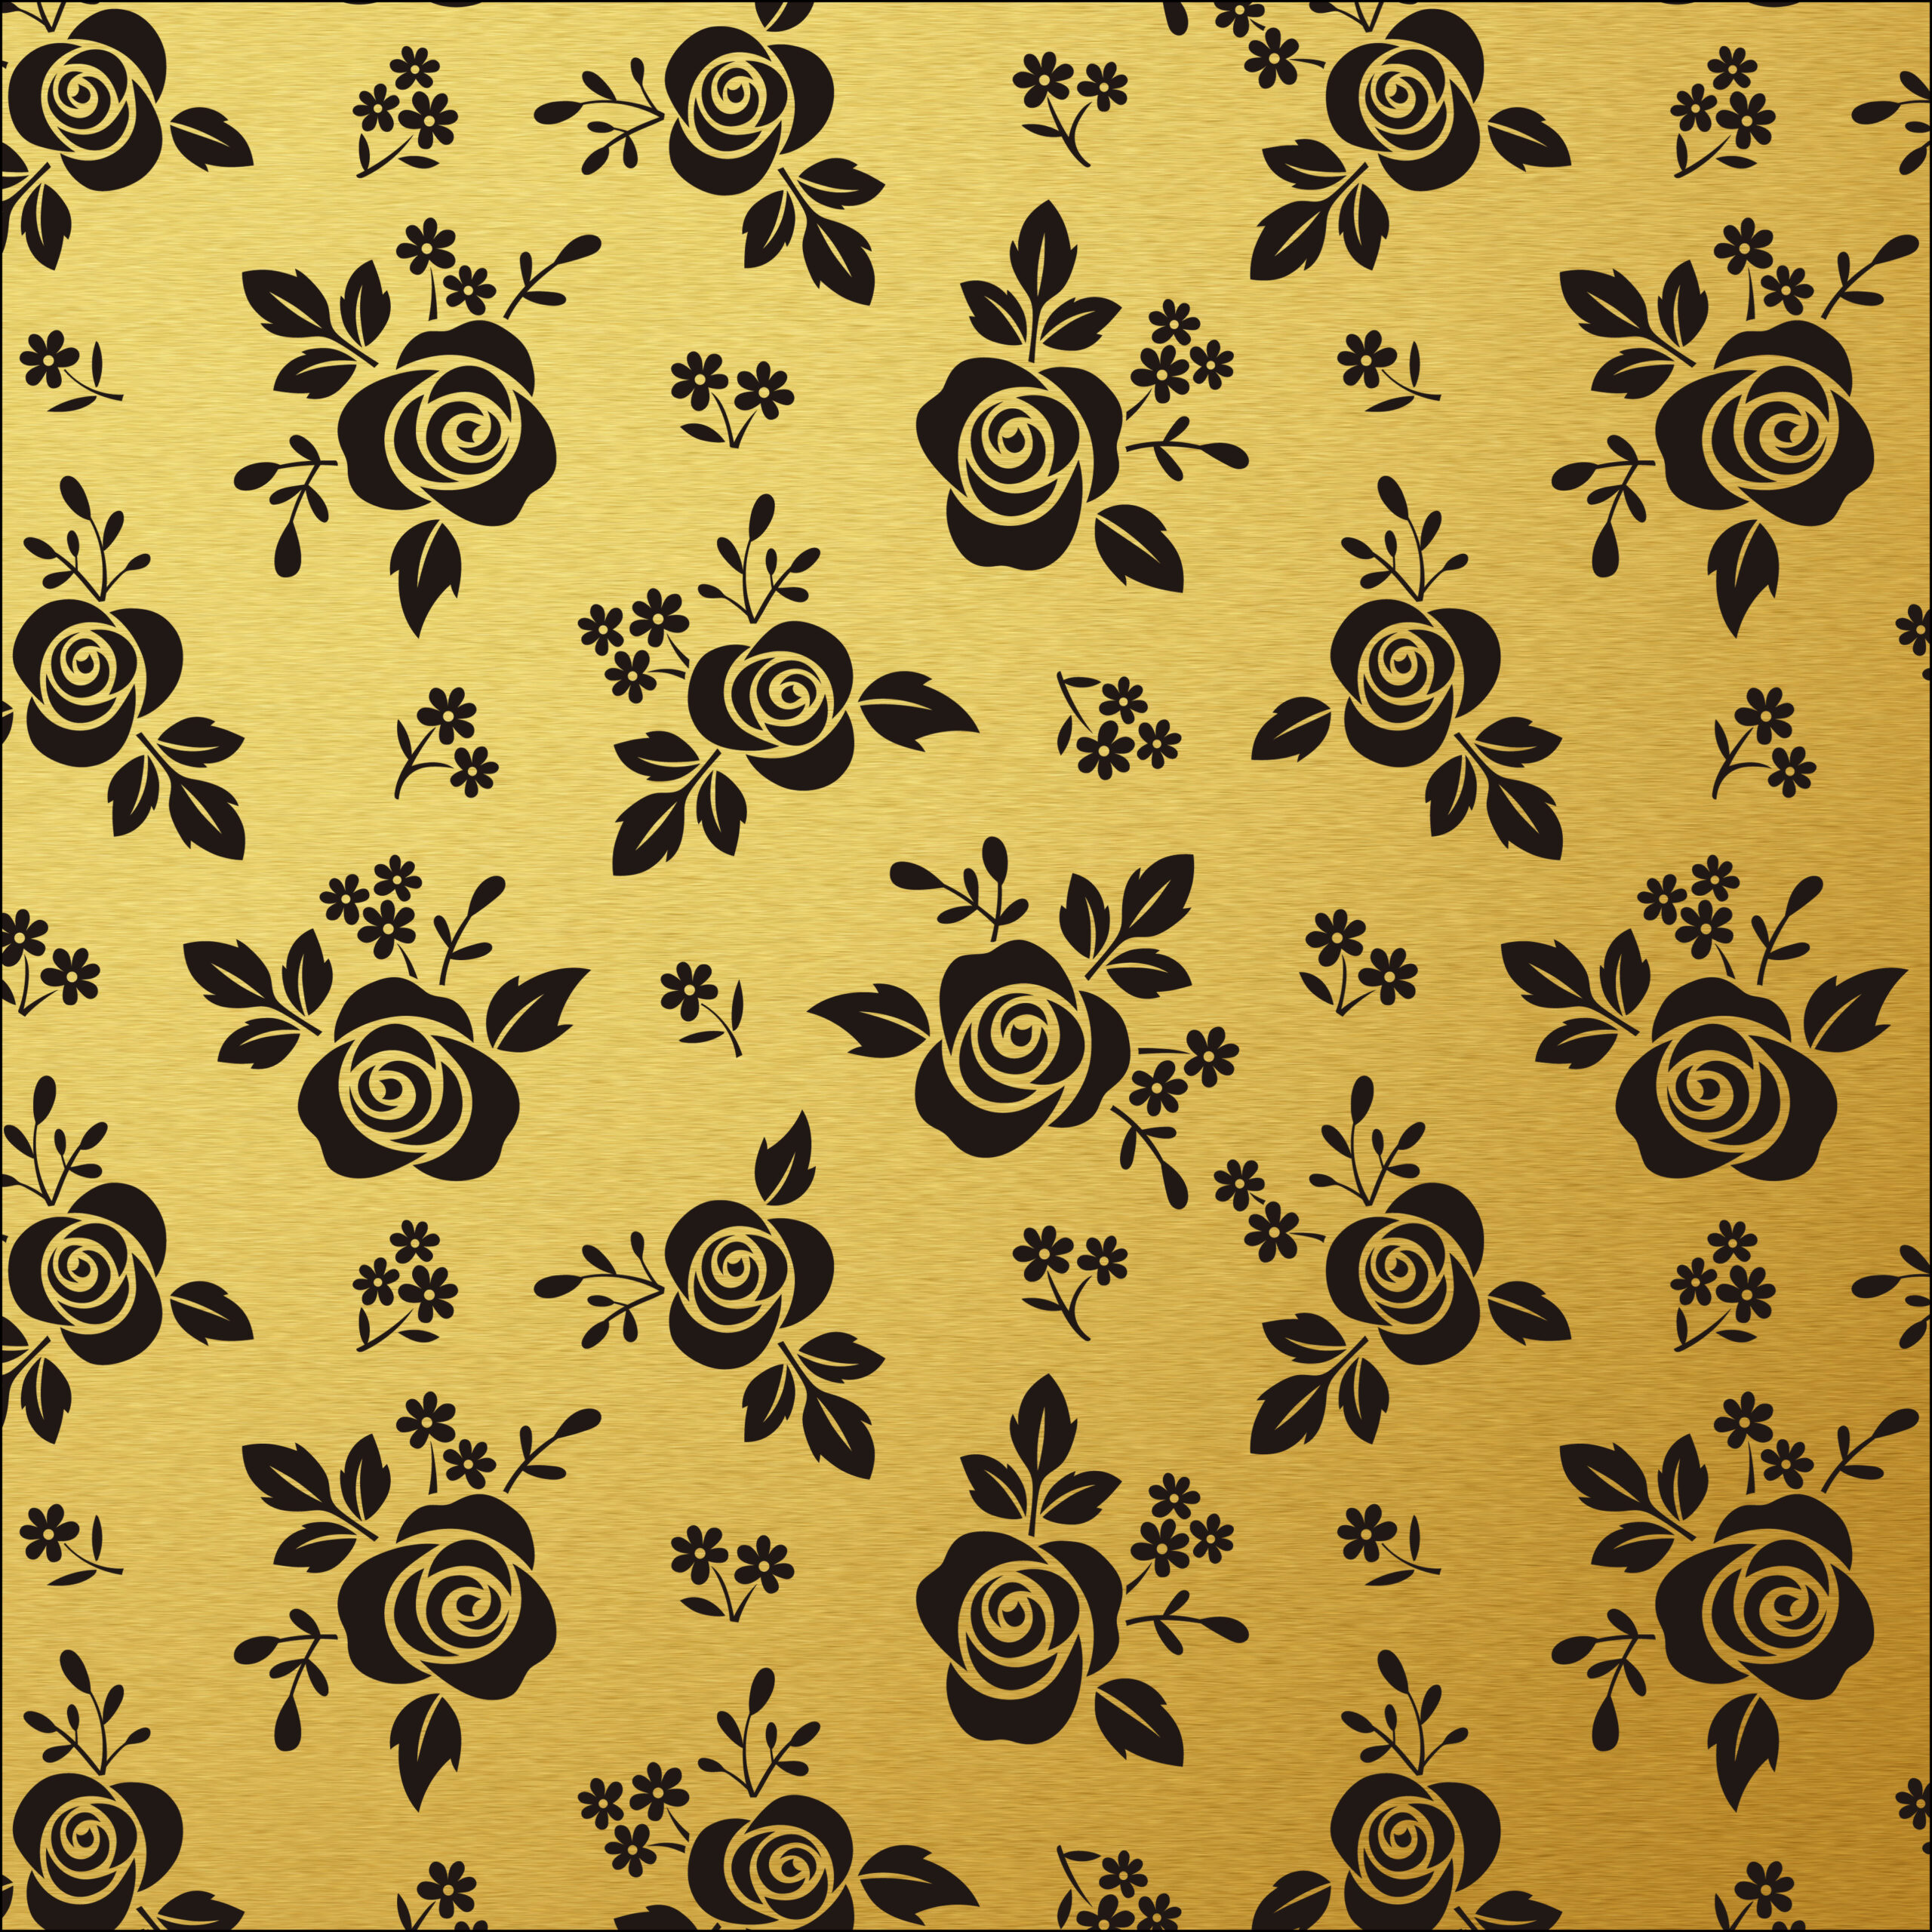 Scrapbook Paper- Black White and Gold leaf - Page 6 of 7 - Free ...